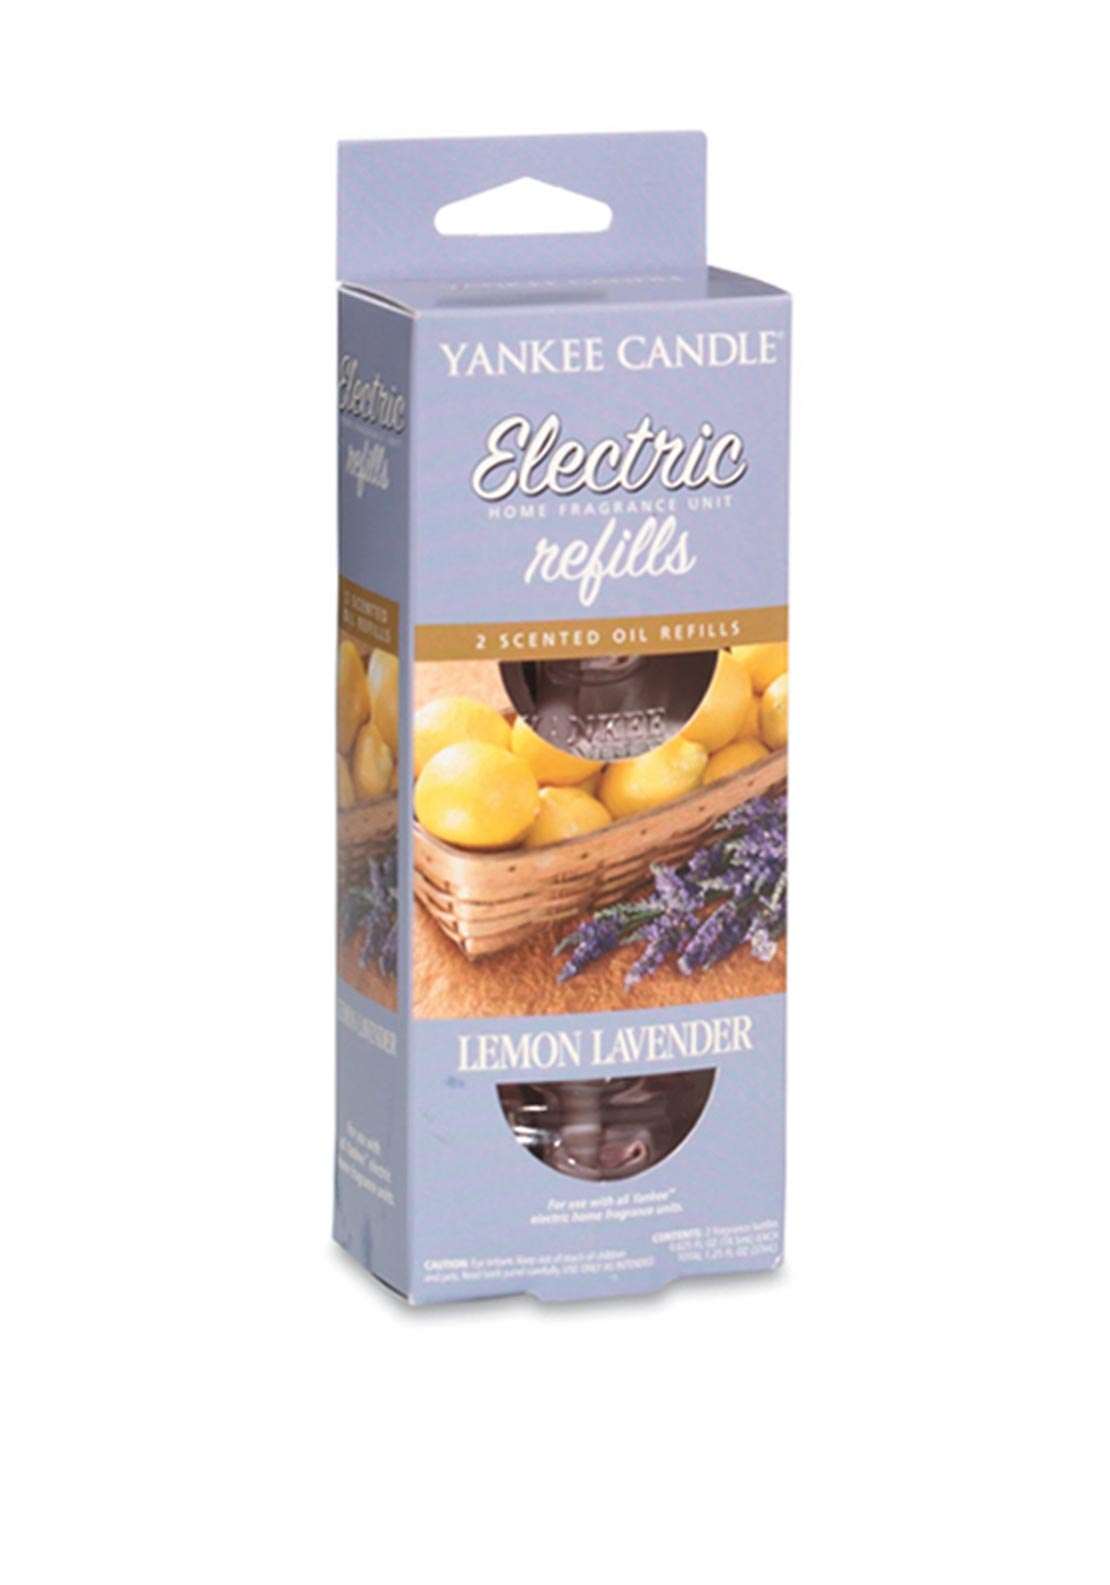 Yankee Candle Electric Fragrance Refills, Lemon Lavender